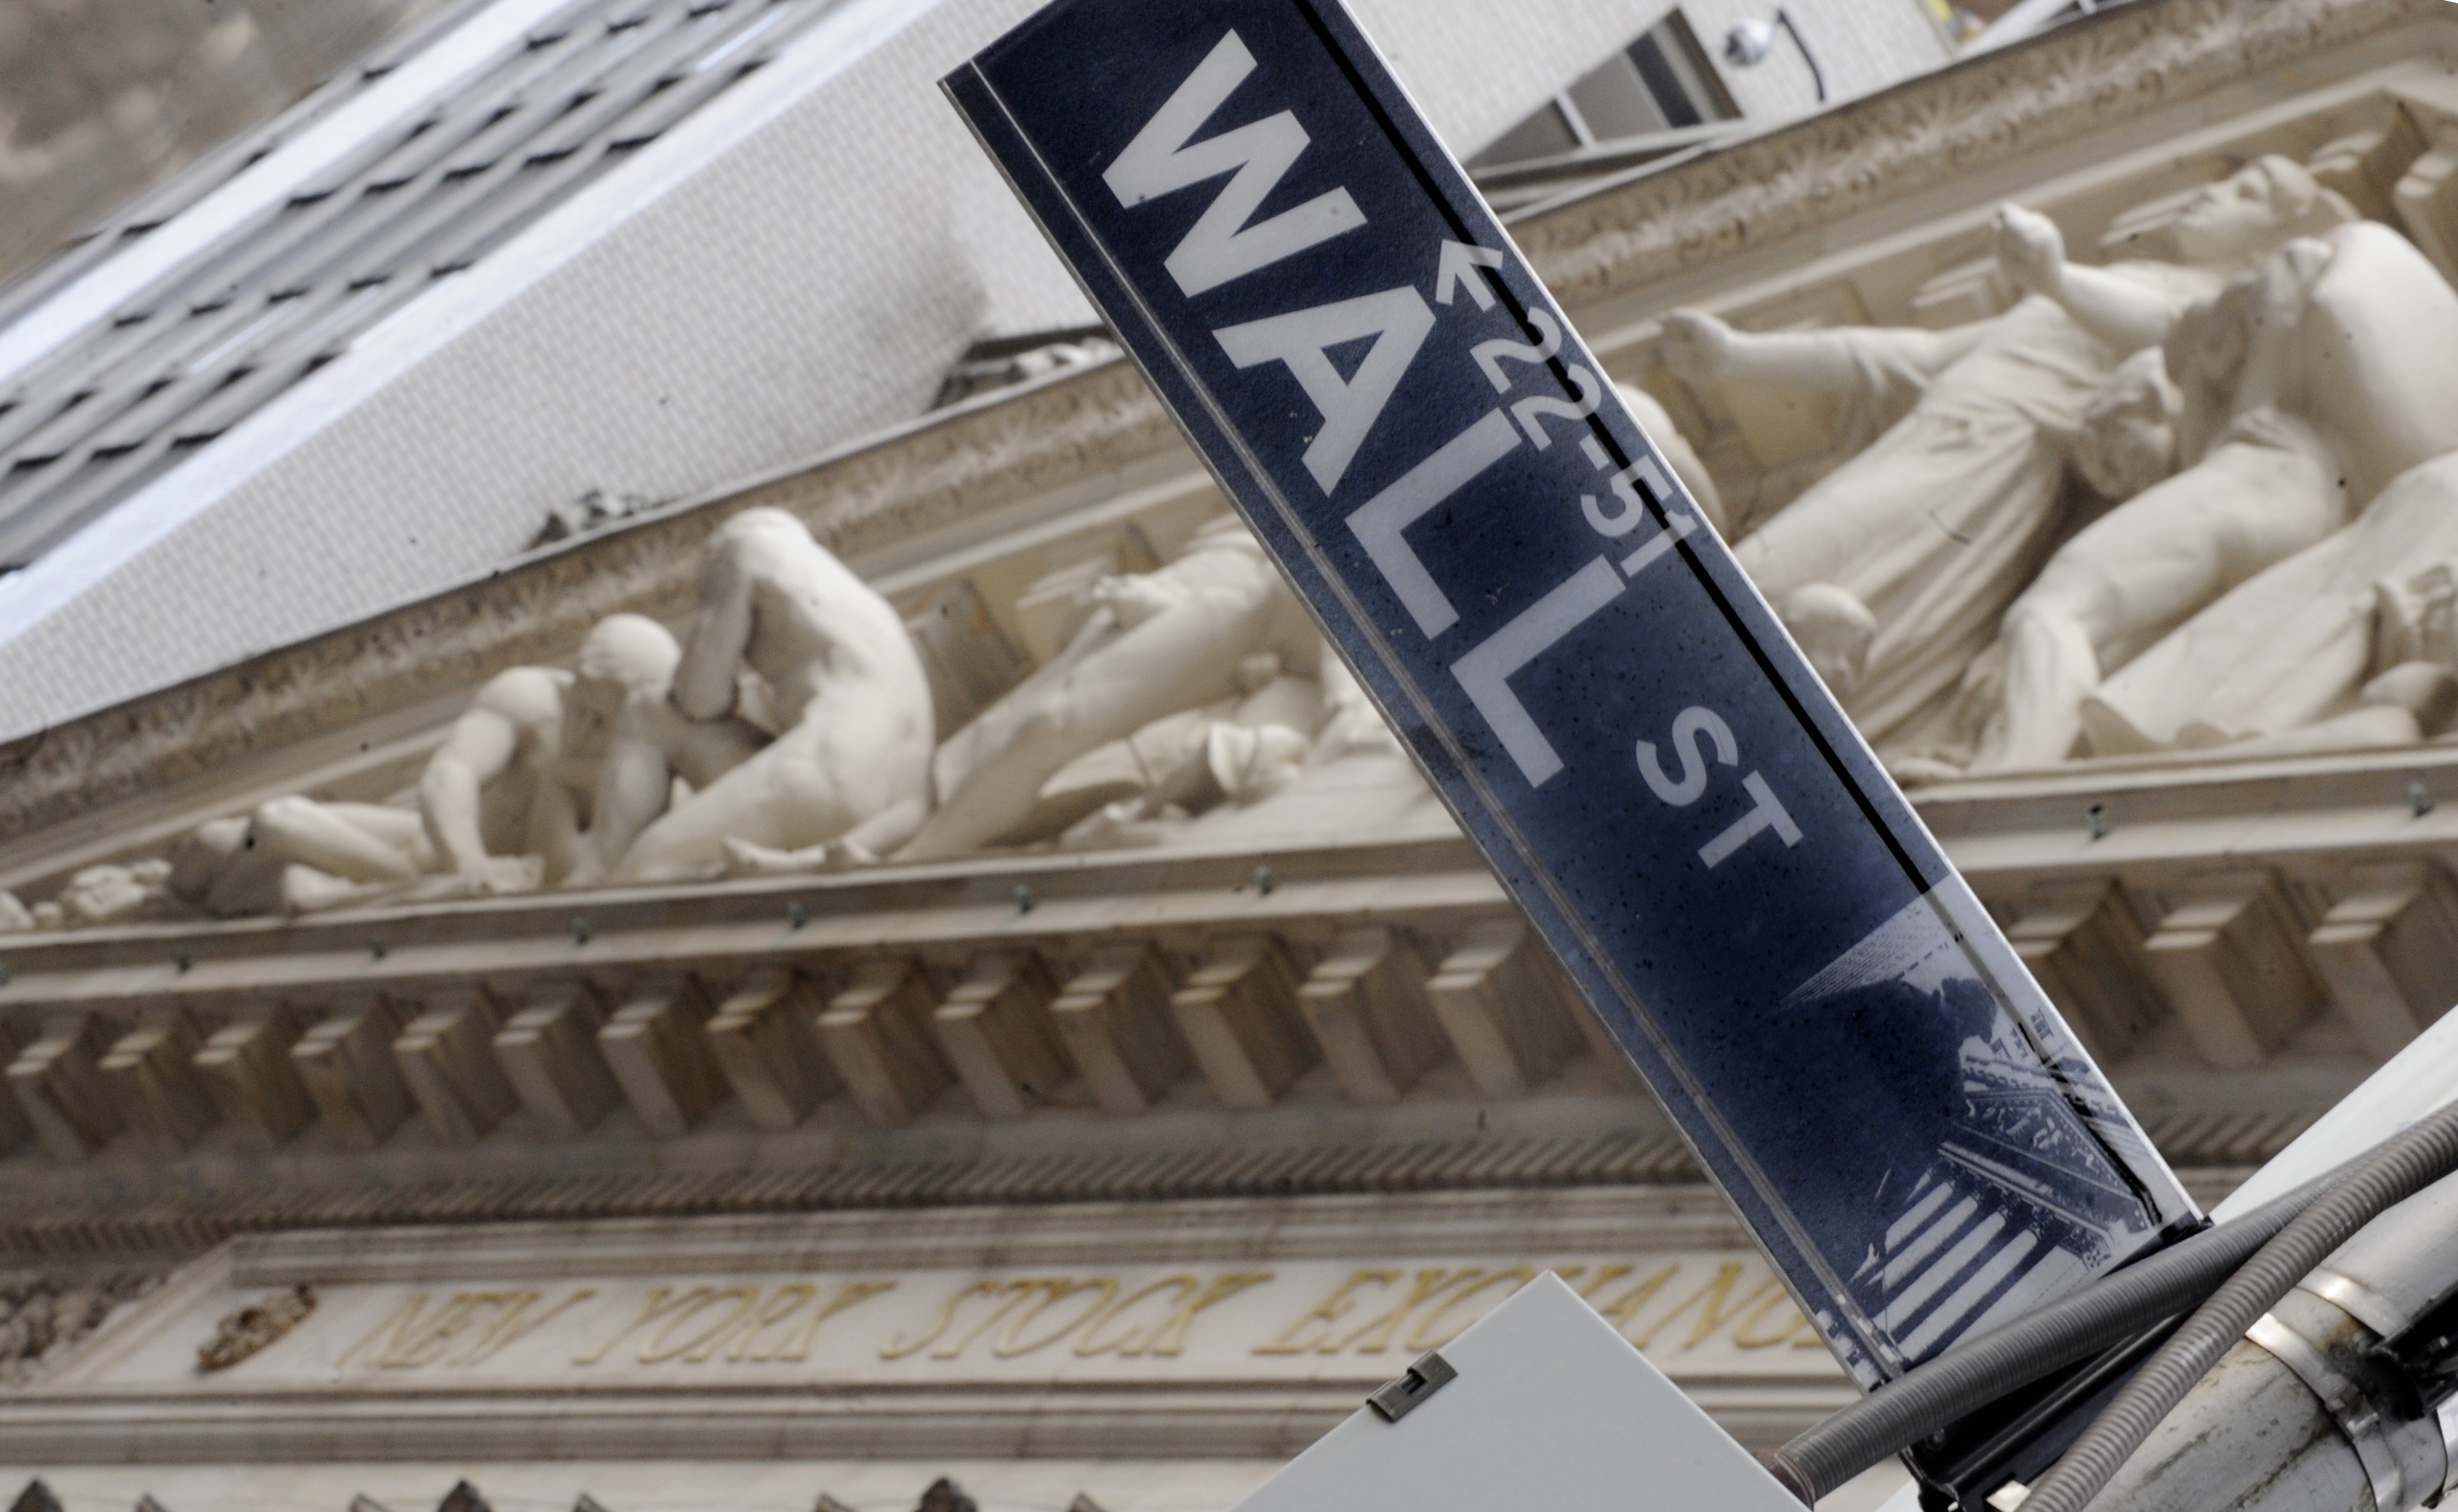 The Wall Street sign is juxtaposed against the sculpture on the facade of the New York Stock Exchange.